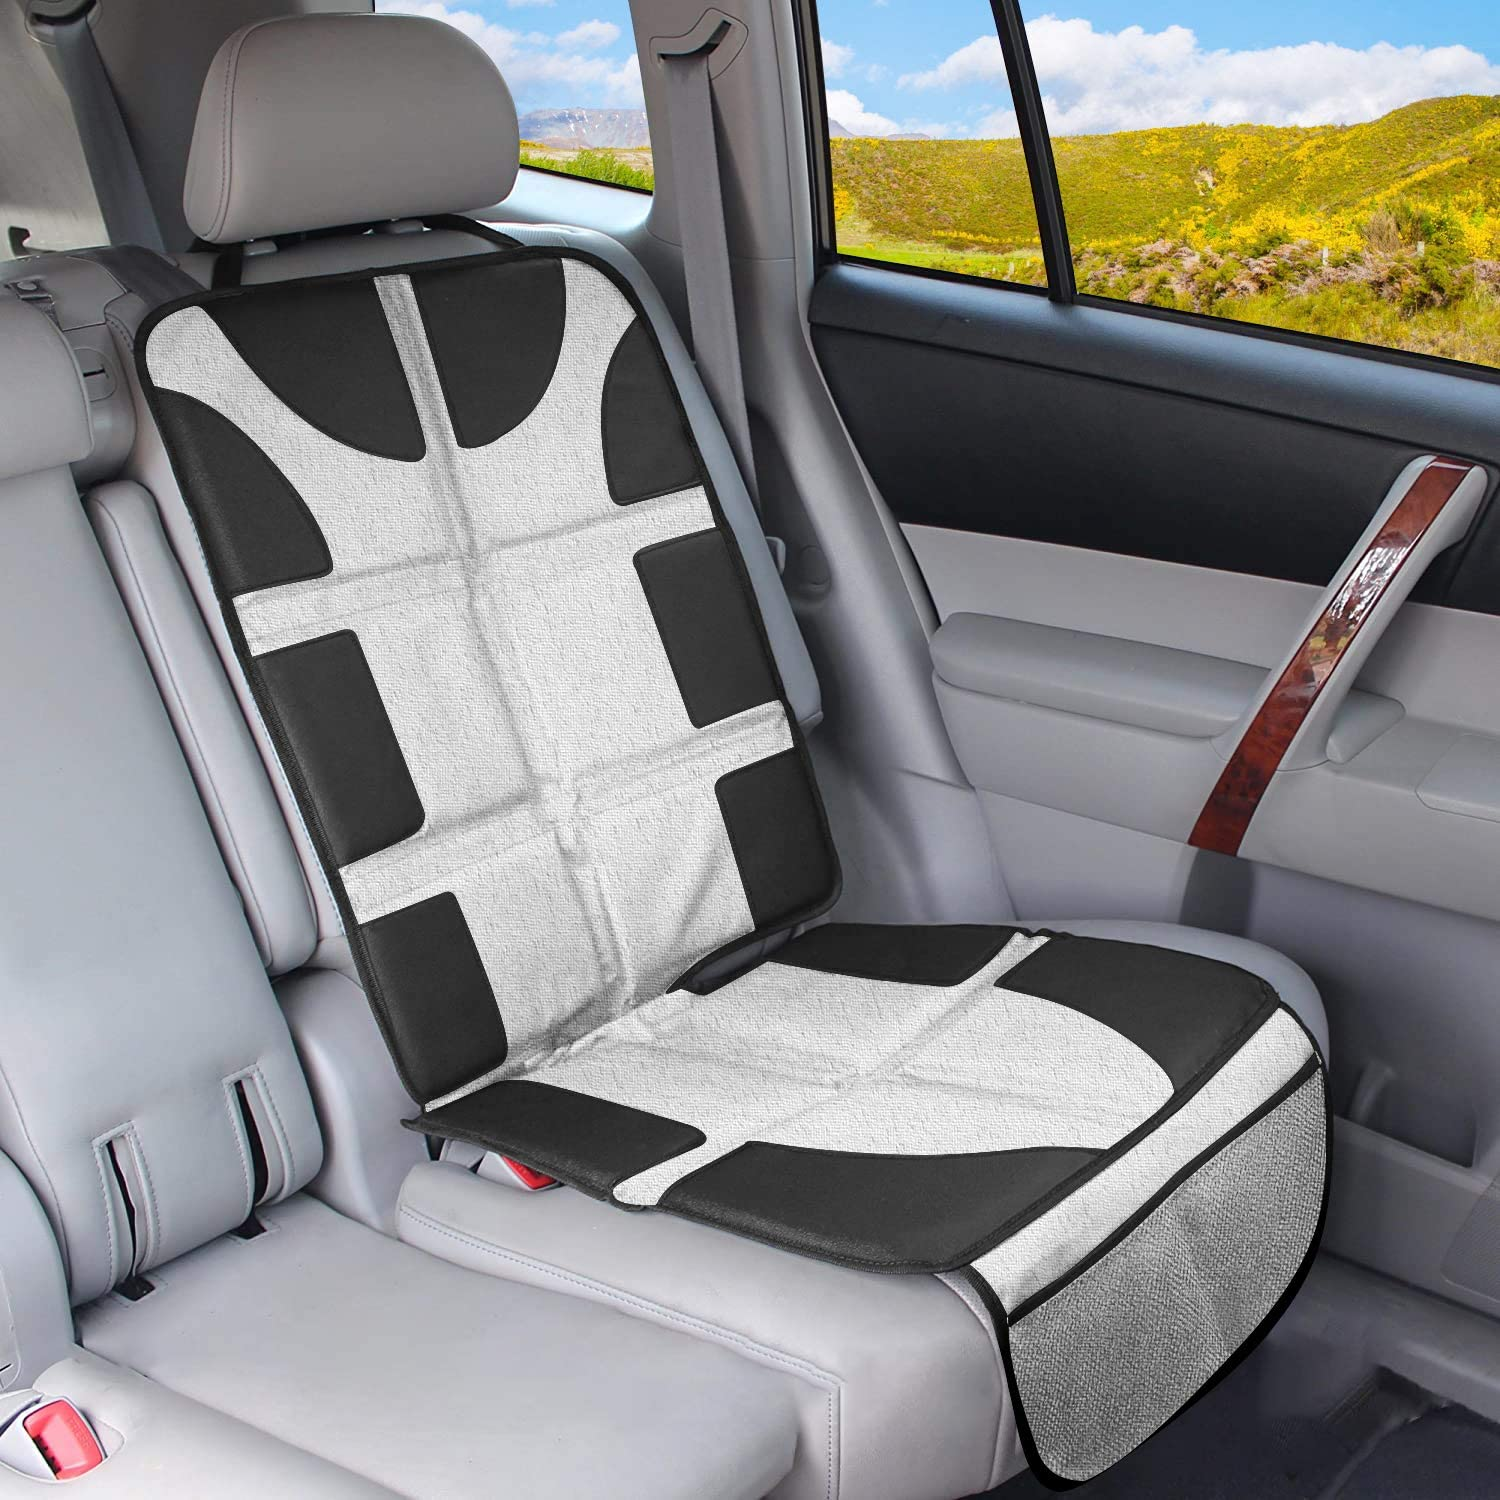 Car Seat Protector for Kids, Back Seat Protector Kids, Backseat Protector for Baby with Pockets, Thick Padding